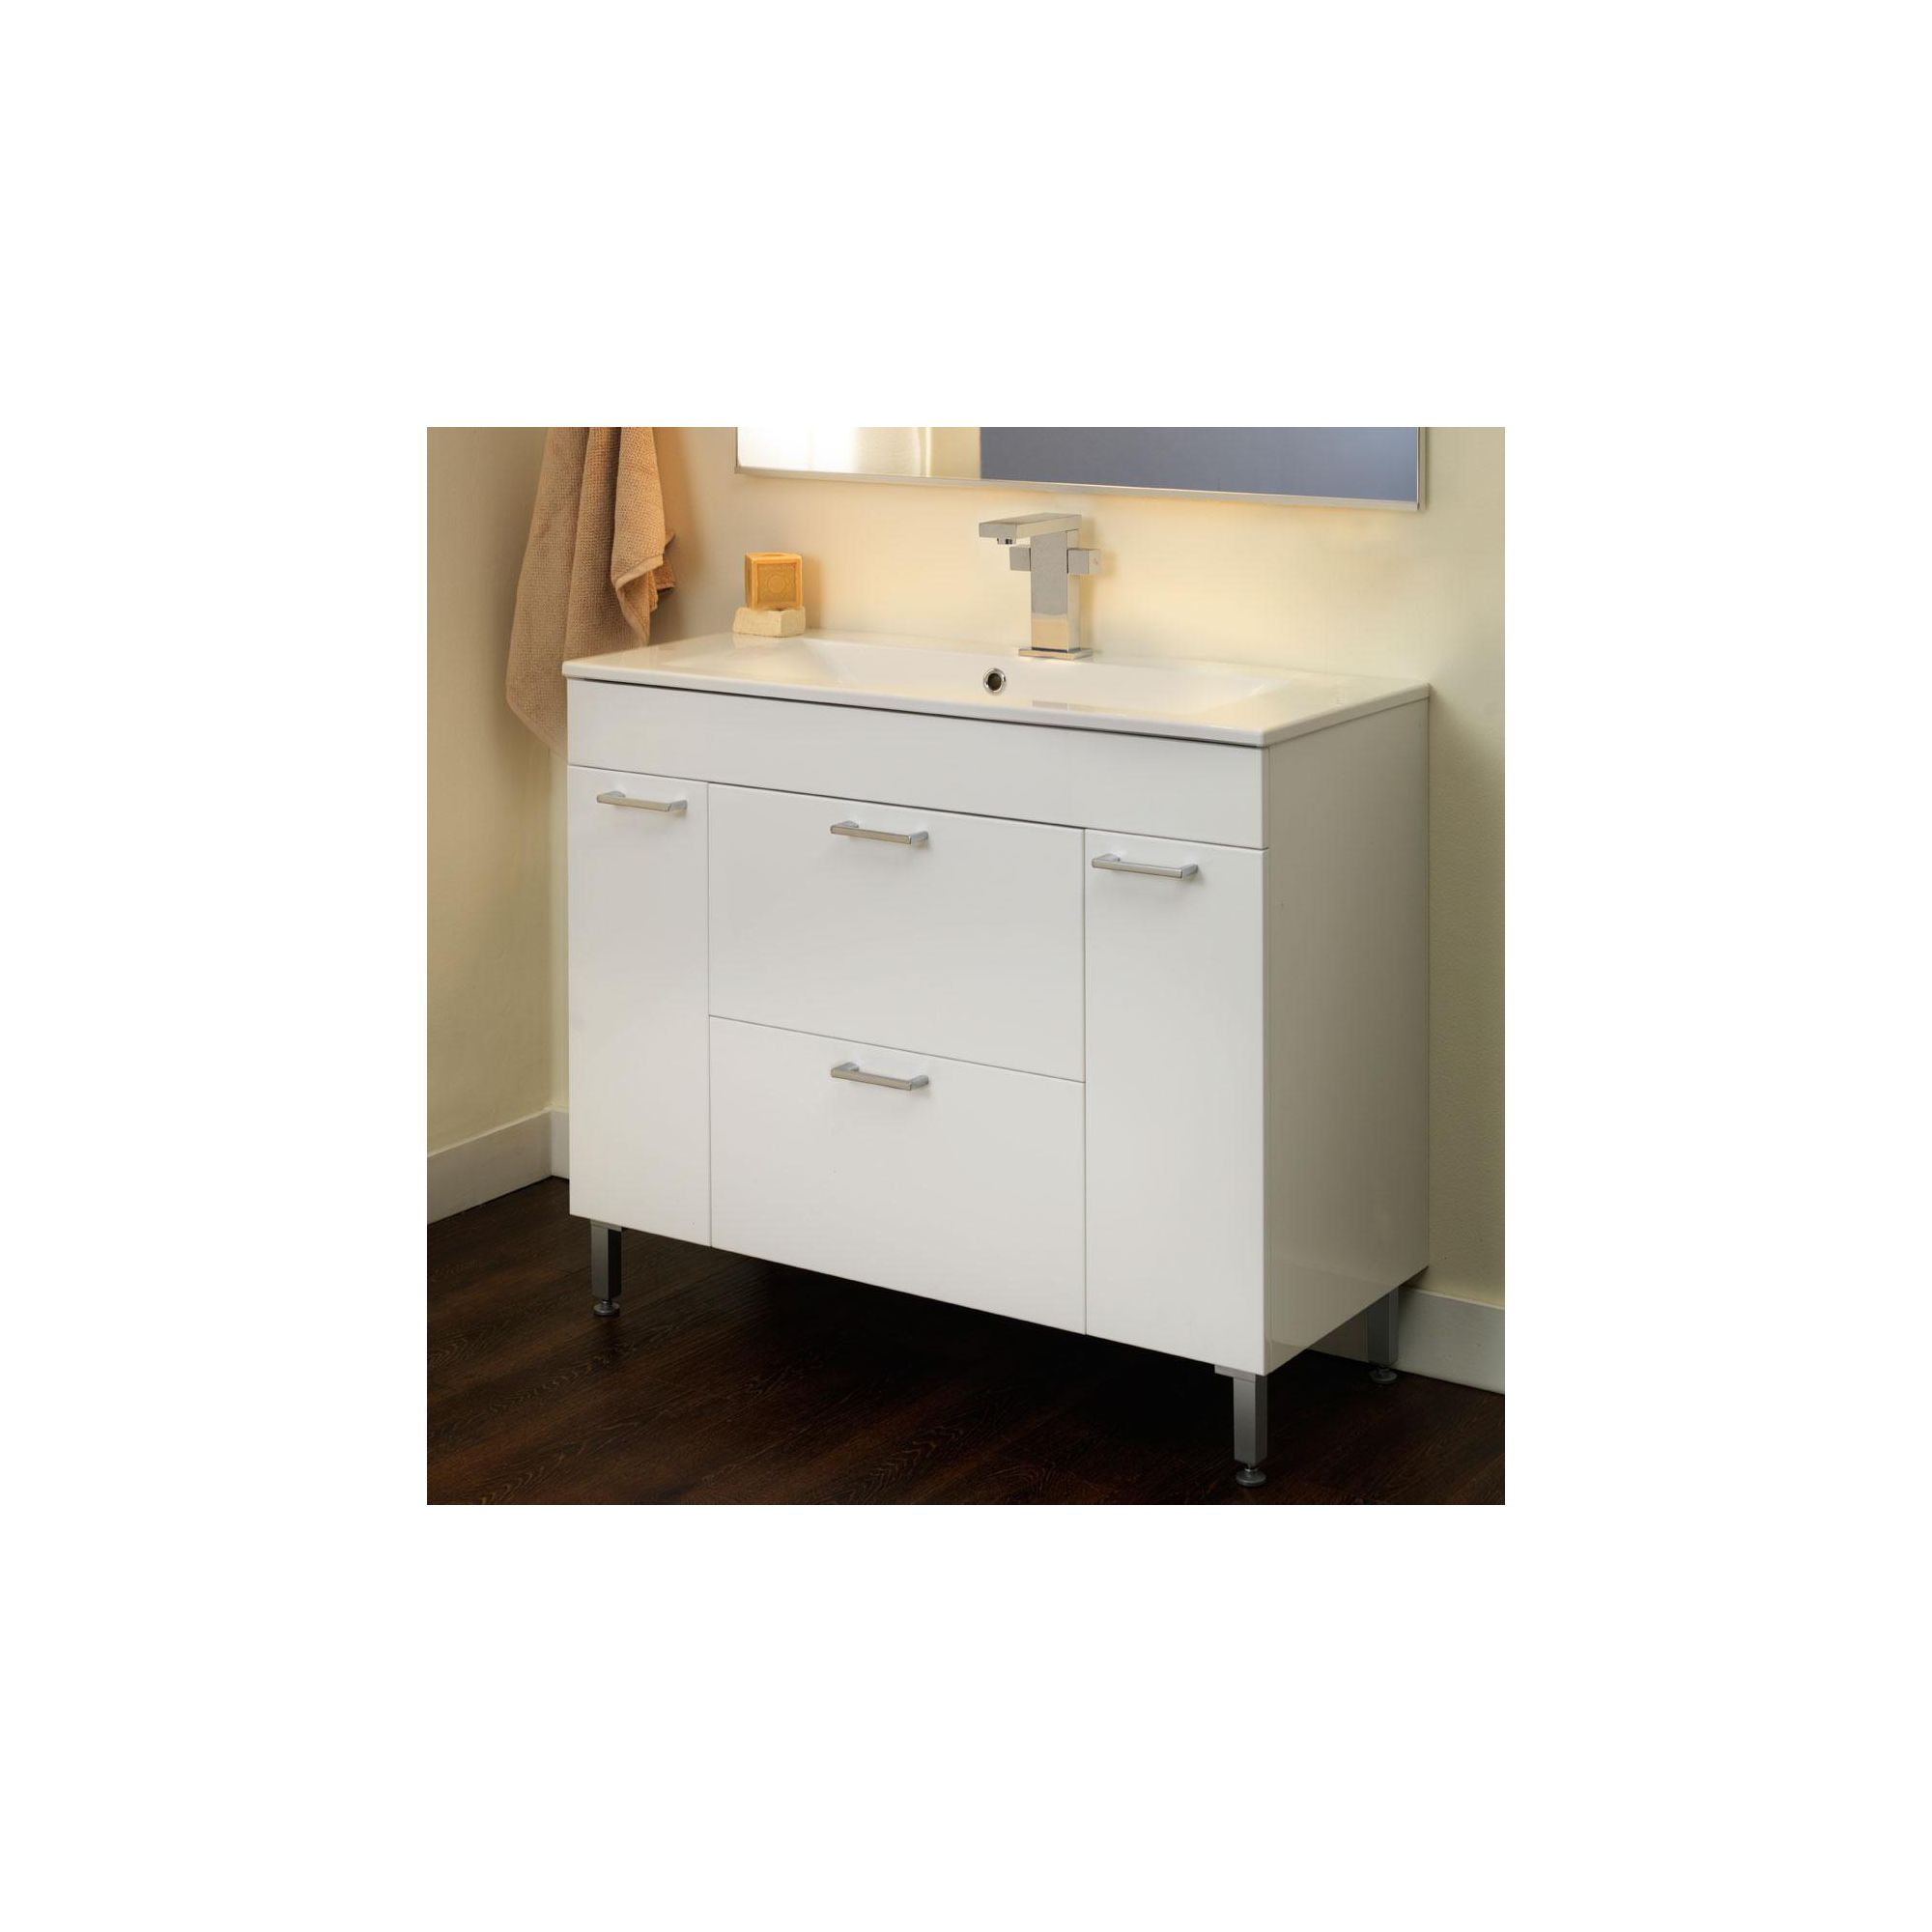 Duchy Trevail White Floor Standing 2 Door 2 Drawer Vanity Unit and Basin - 1000mm Wide x 425mm Deep